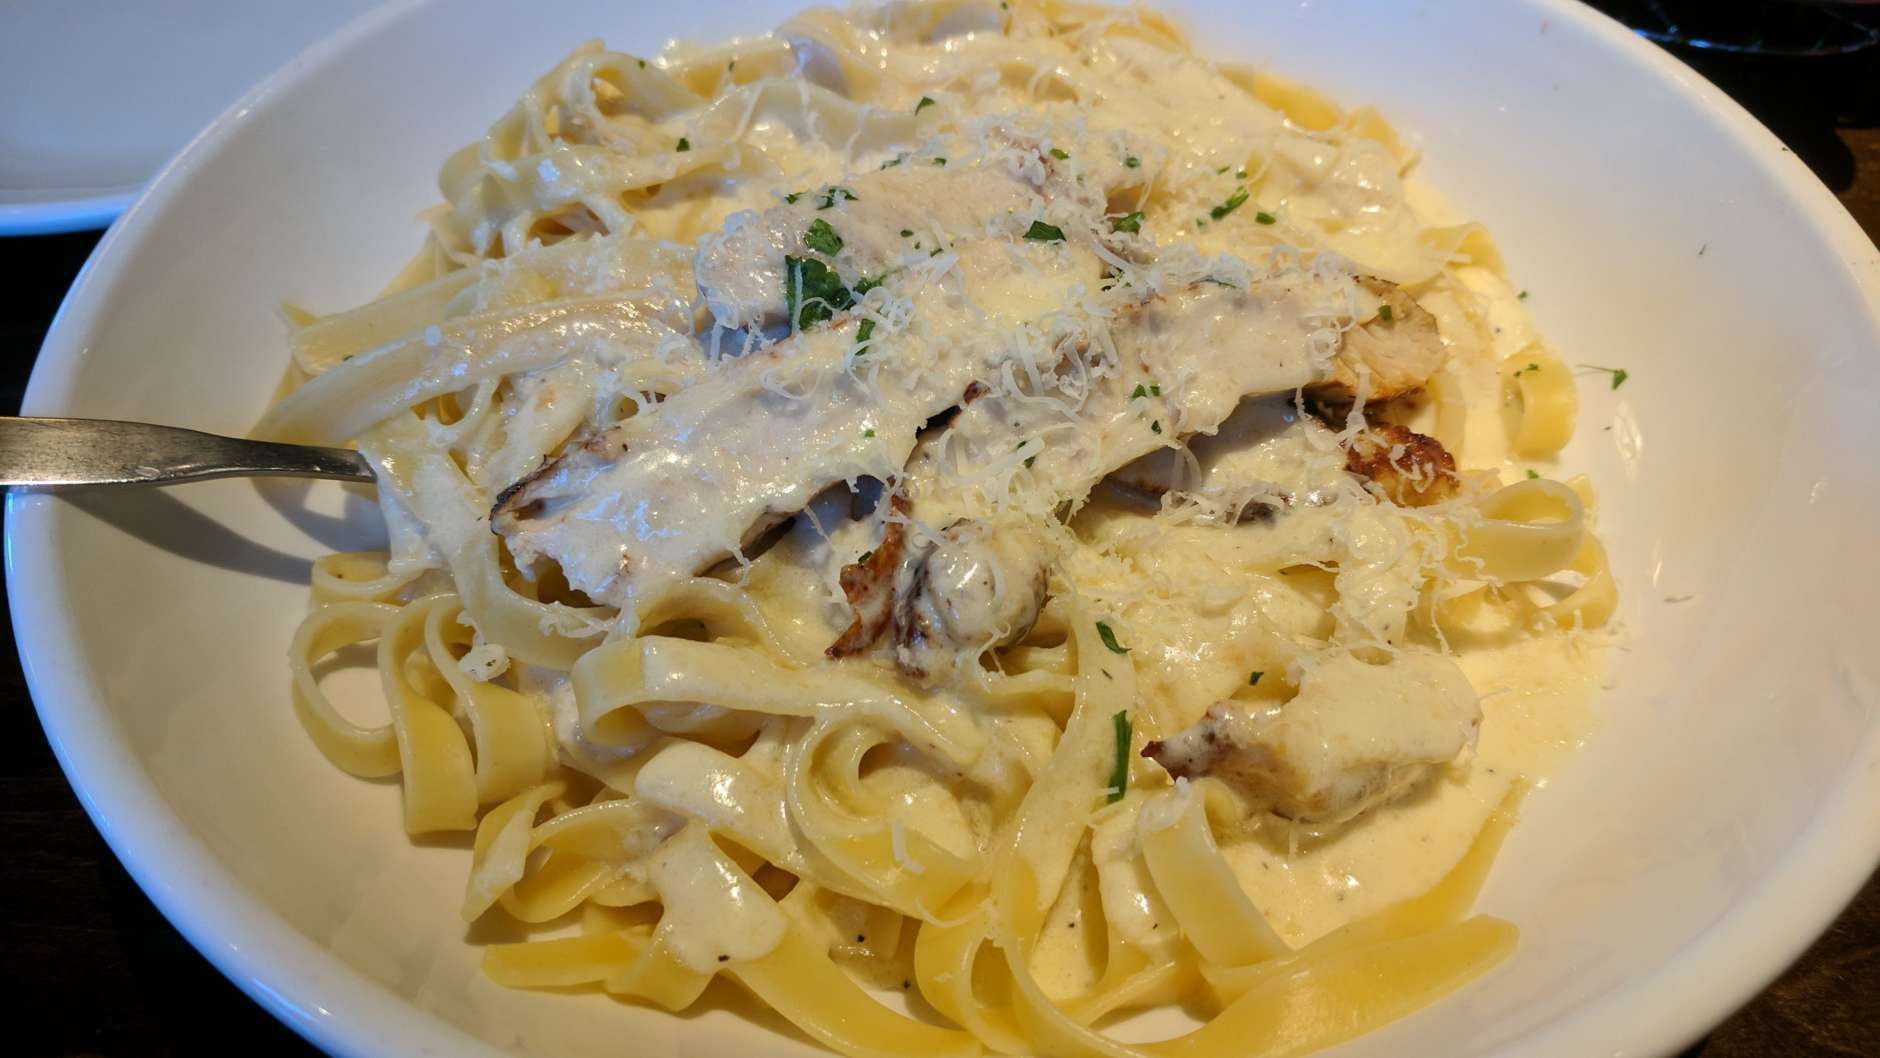 The meal: Cavatappi with fettuccine alfredo and grilled chicken. (WTOP/Brandon Millman)